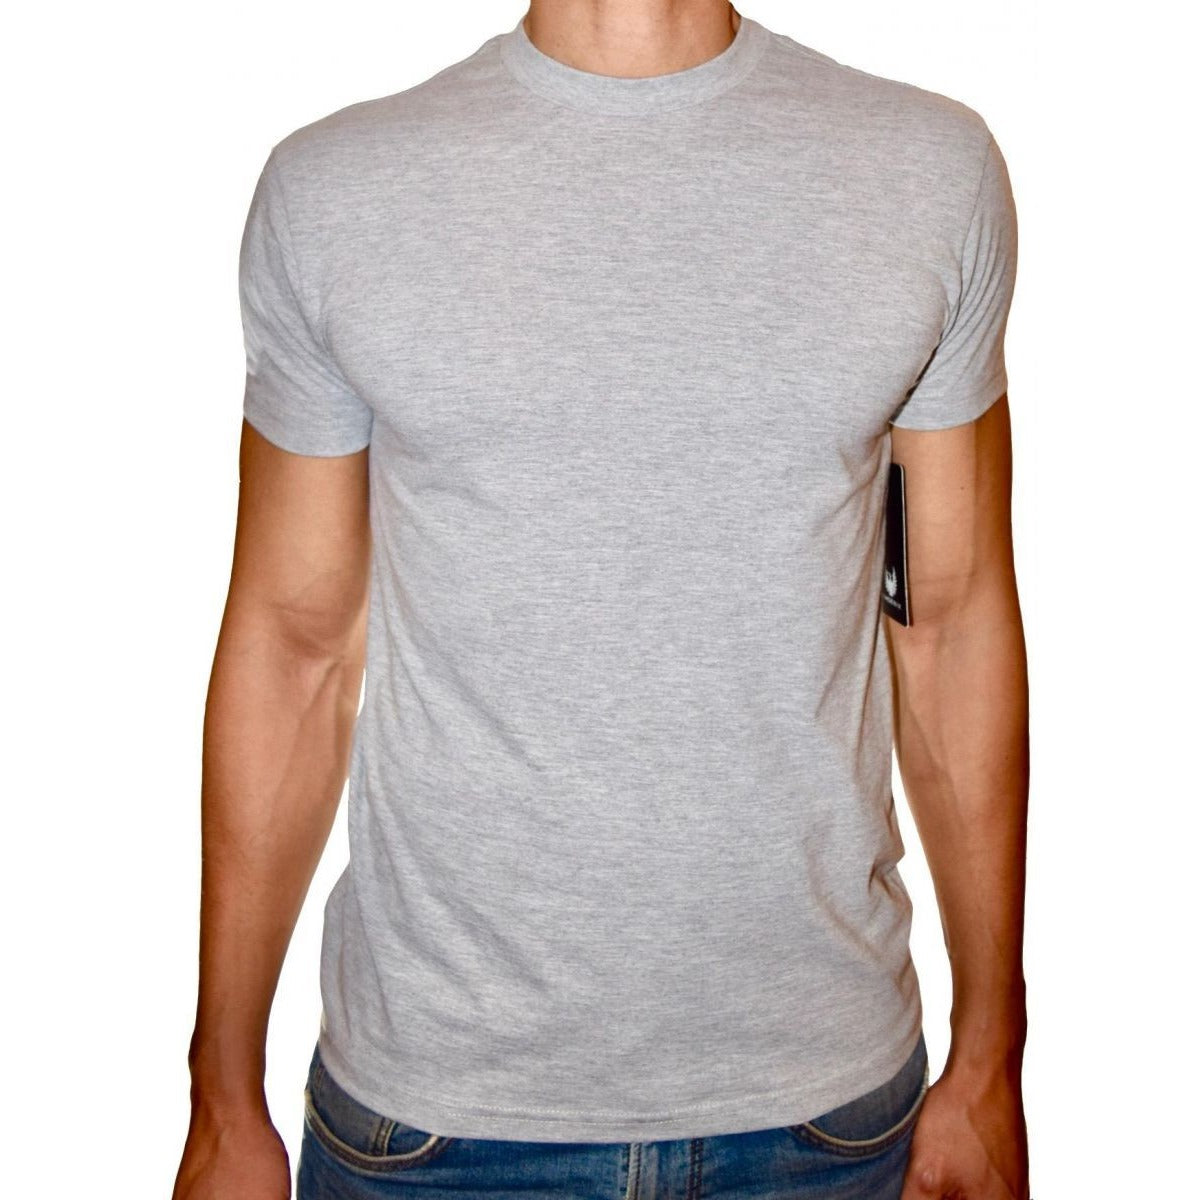 PHOENIX Basic Grey Round Neck T-Shirt For Men